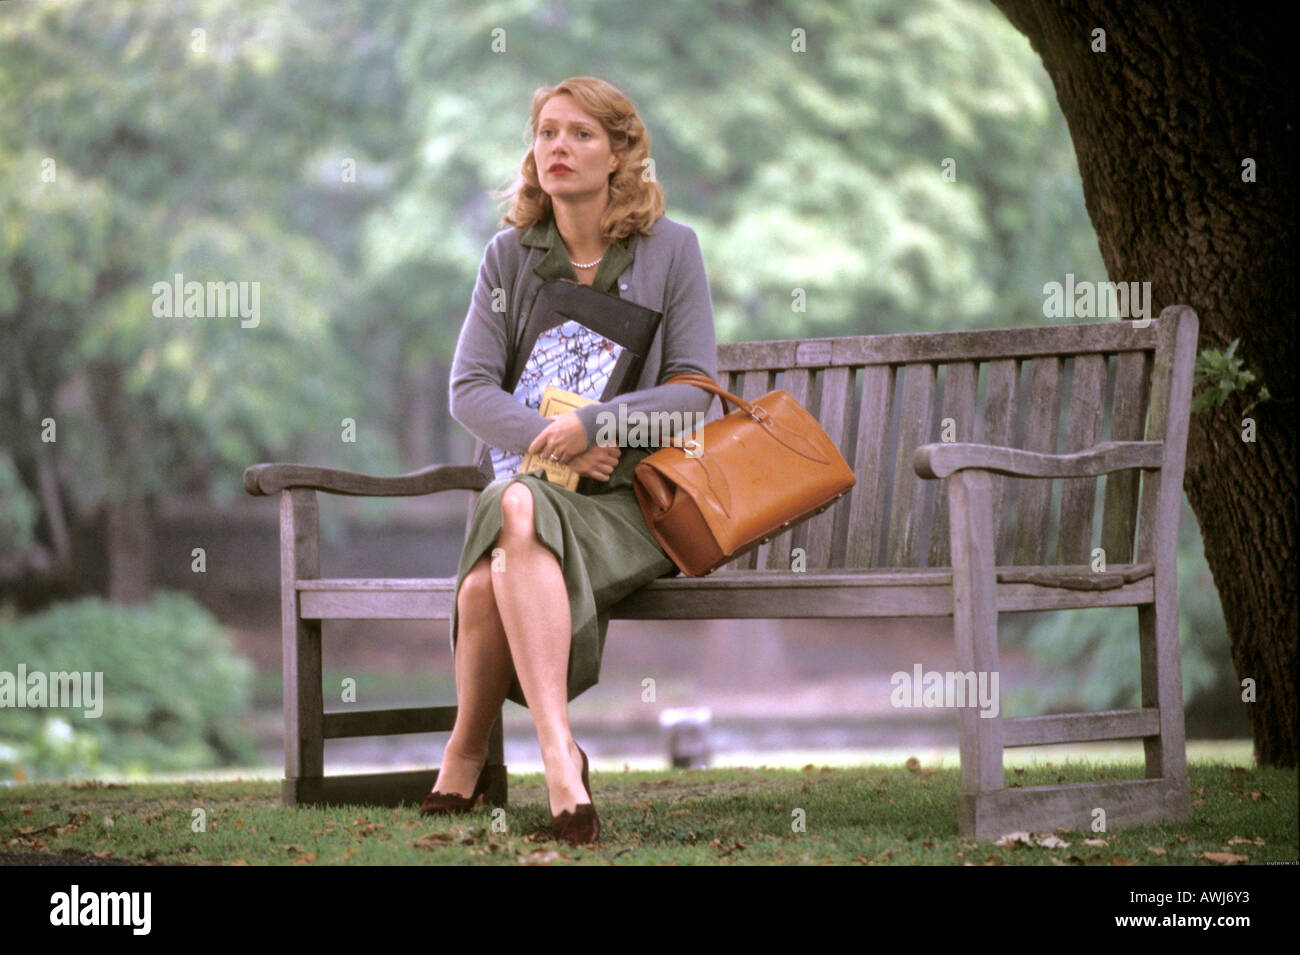 SYLVIA  2003 Icon film with Gwyneth Paltrow - Stock Image